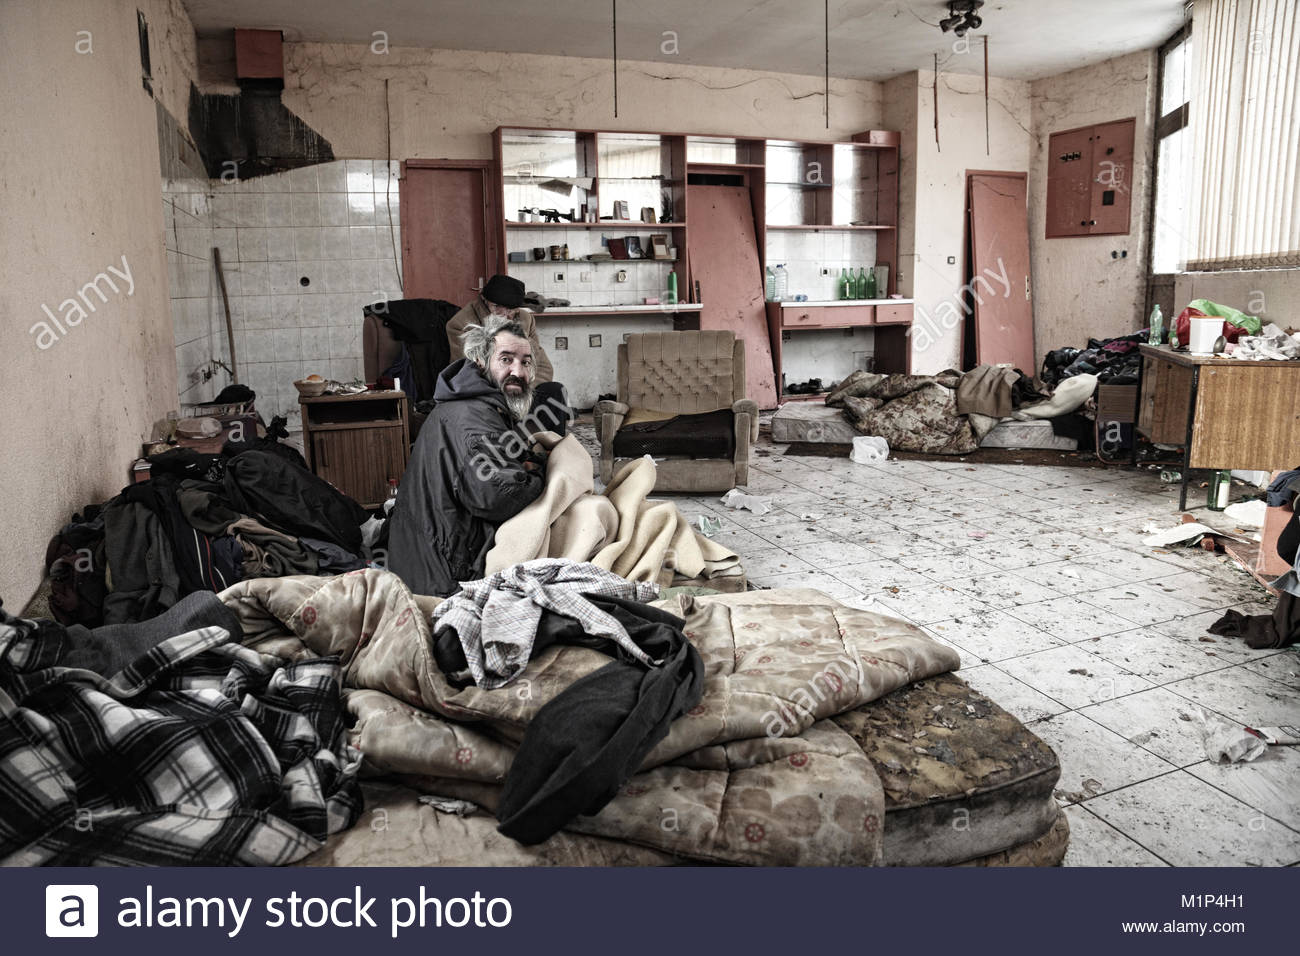 Homeless men sitting in abandoned house - Stock Image